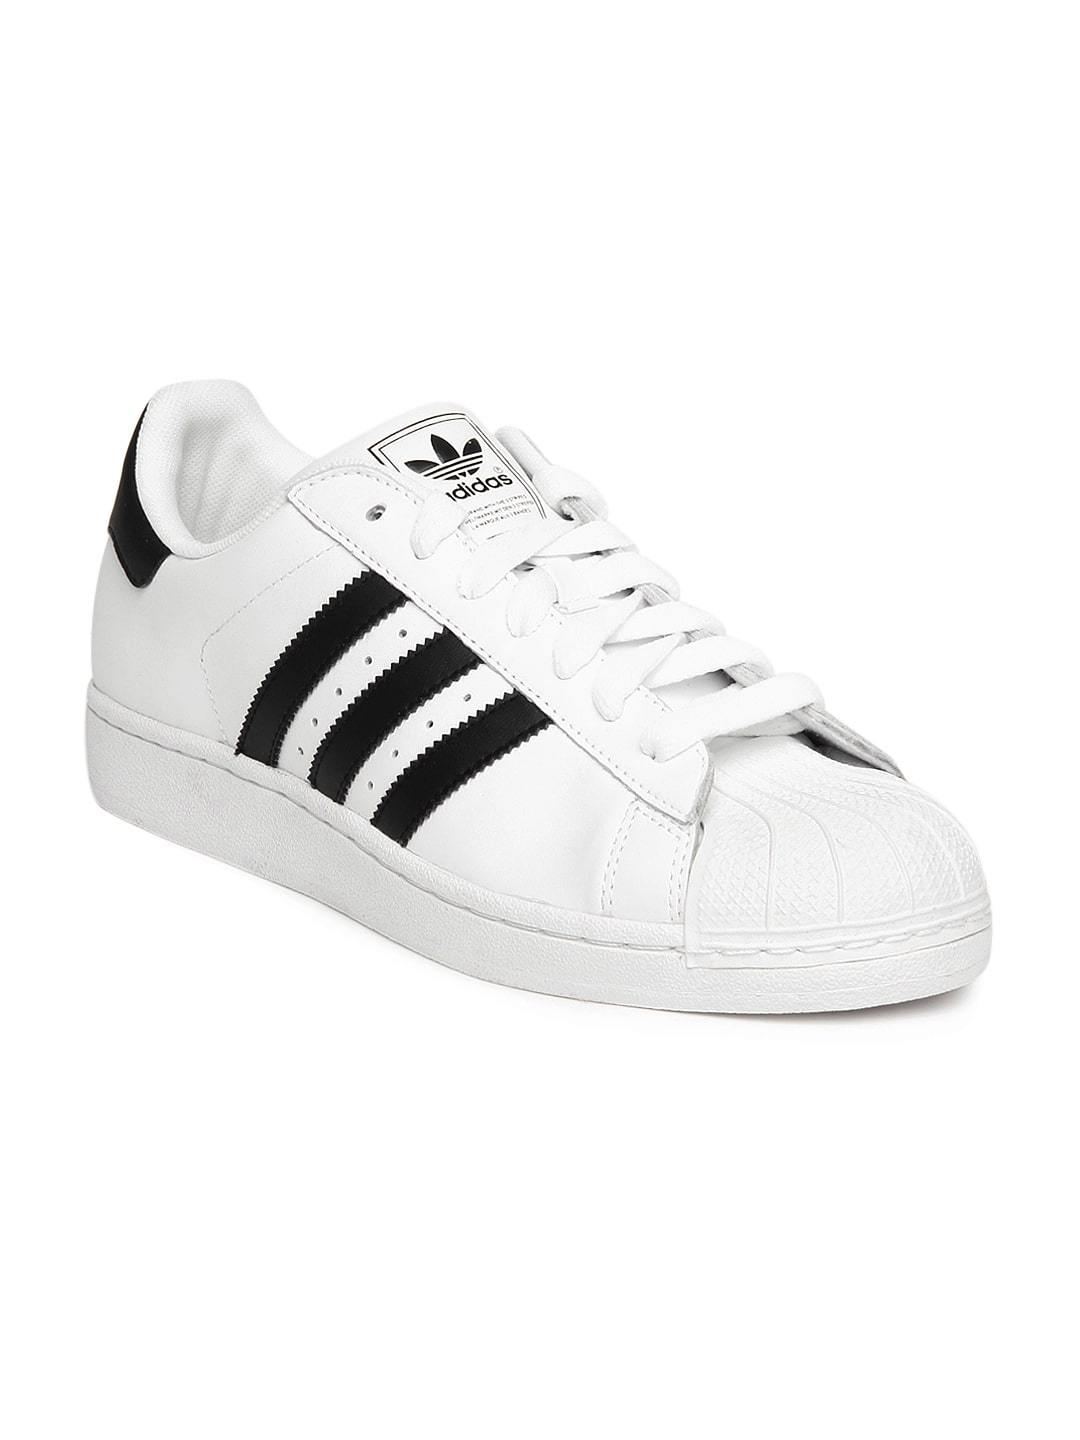 astcl Adidas Superstar 2 India ballinteerbandb.co.uk